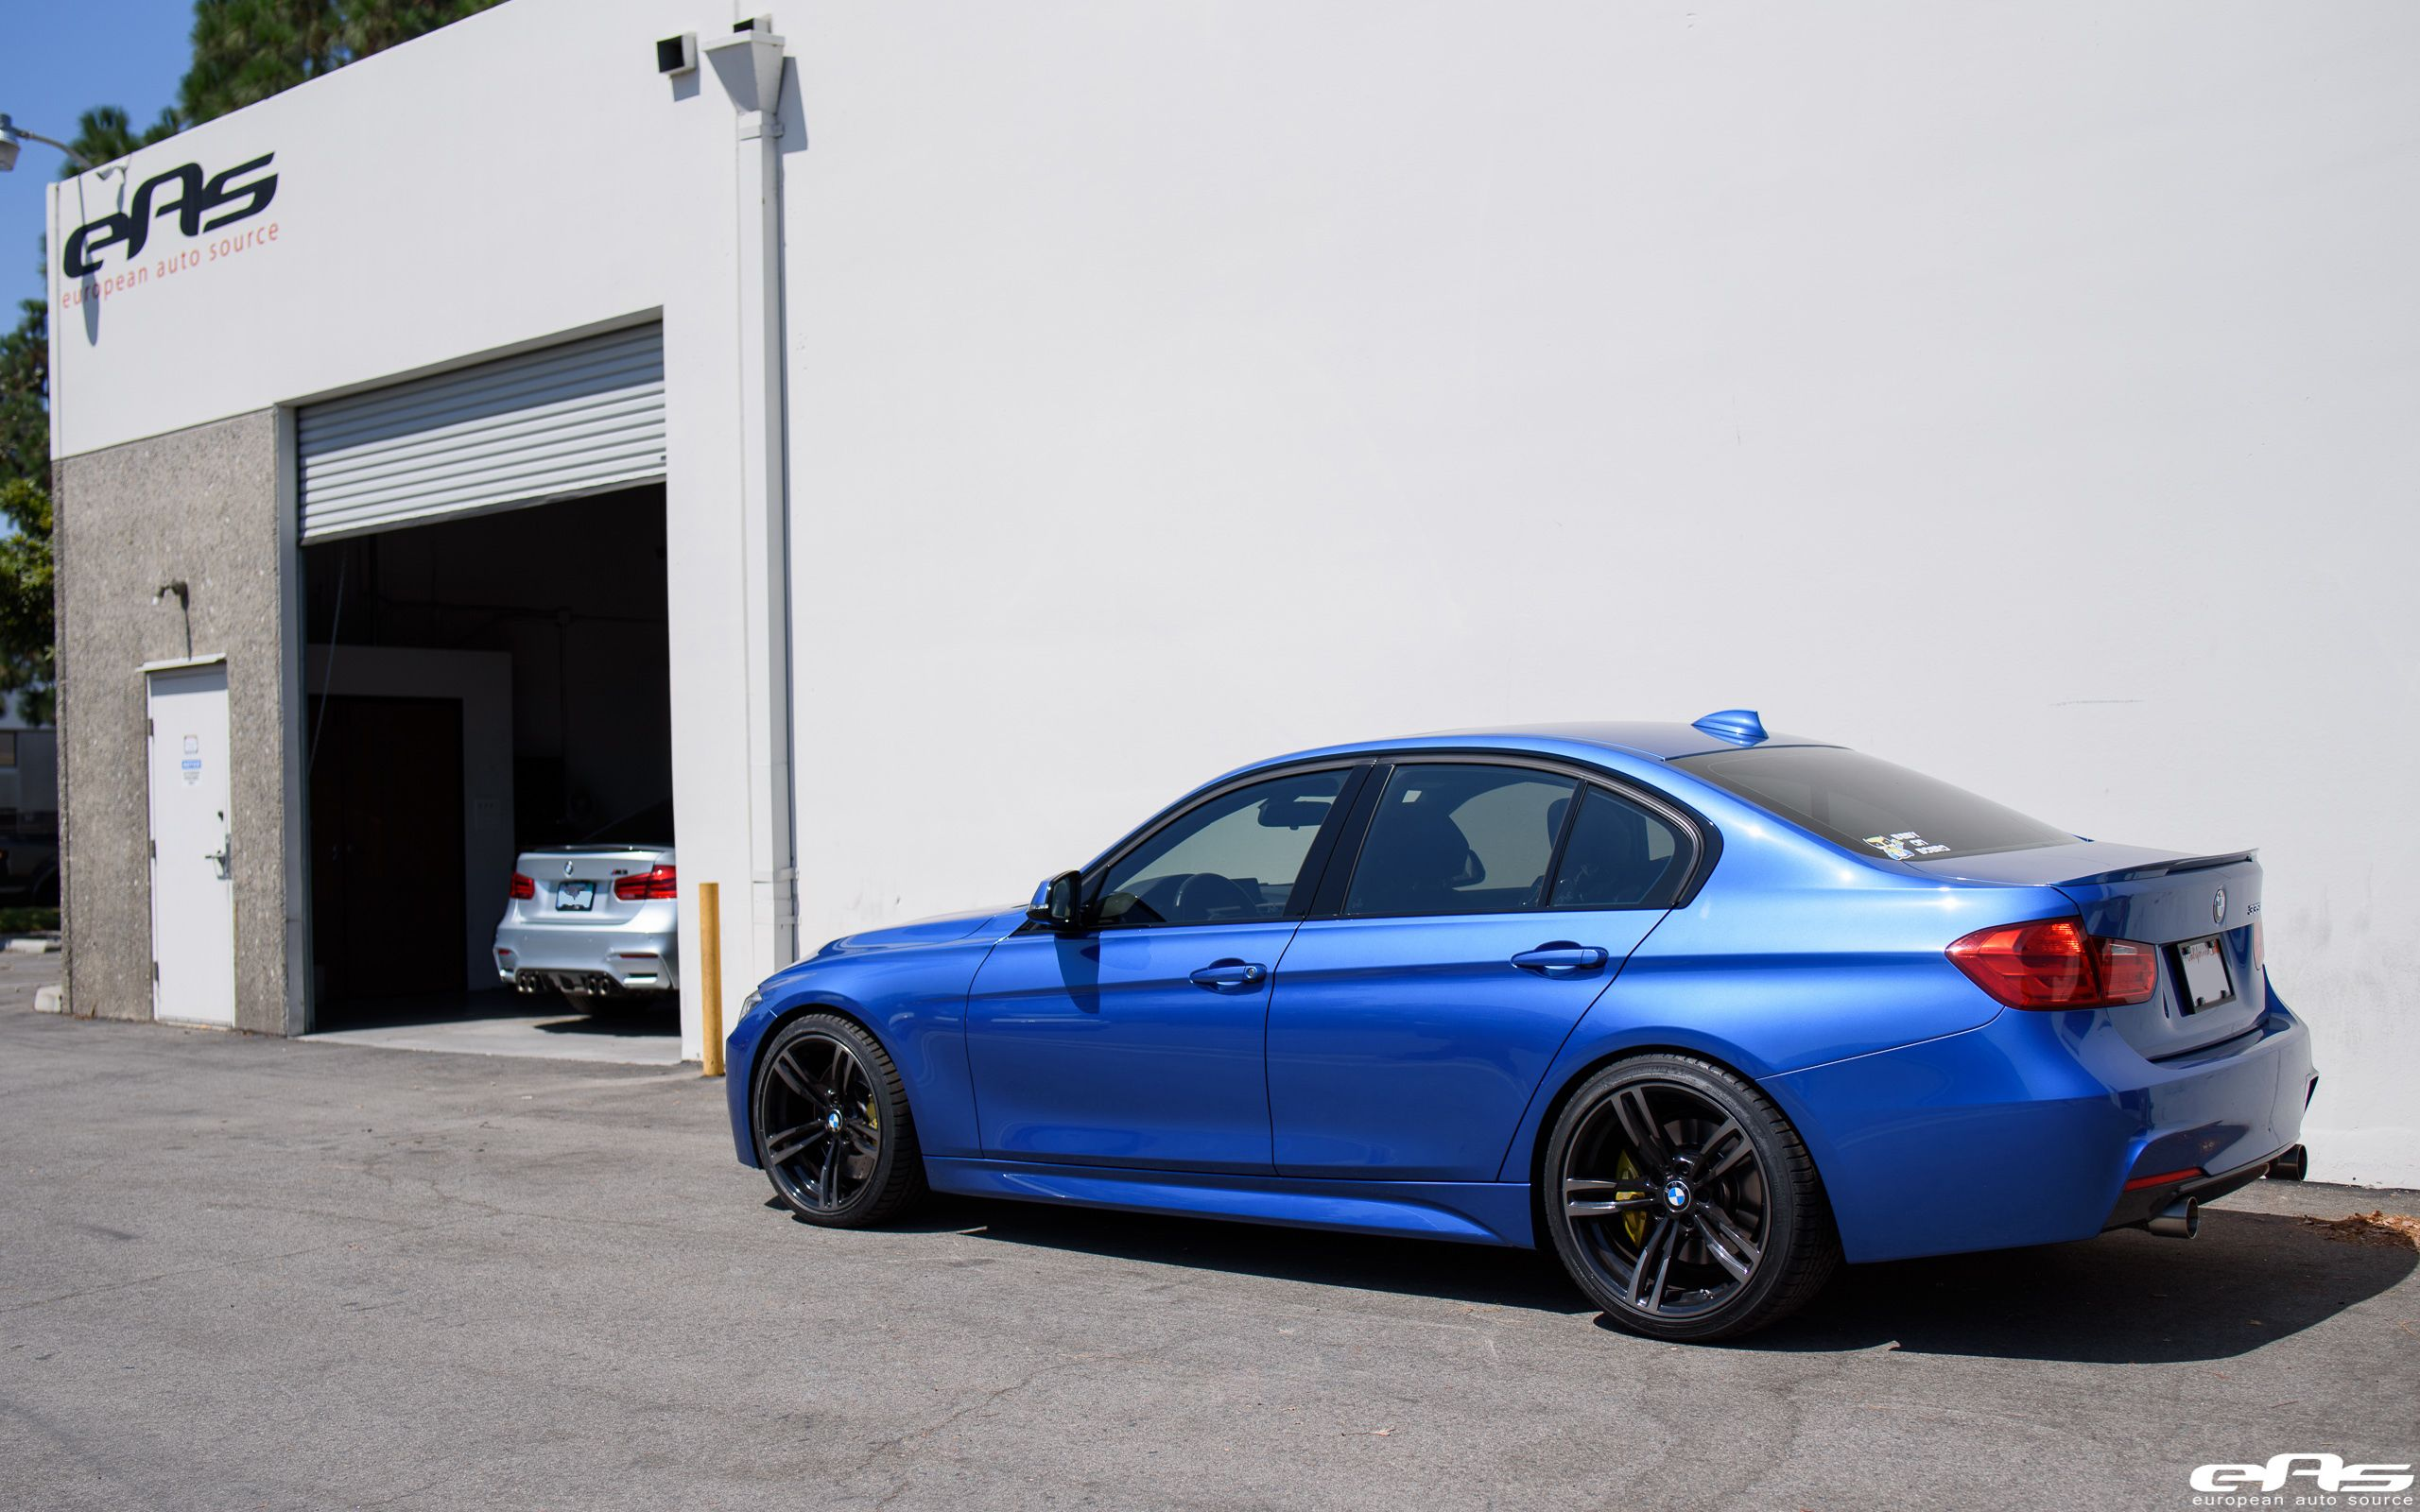 Garage Peugeot Dinan Estoril Blue F30 335i Dinan M Performance Bmw Bmw